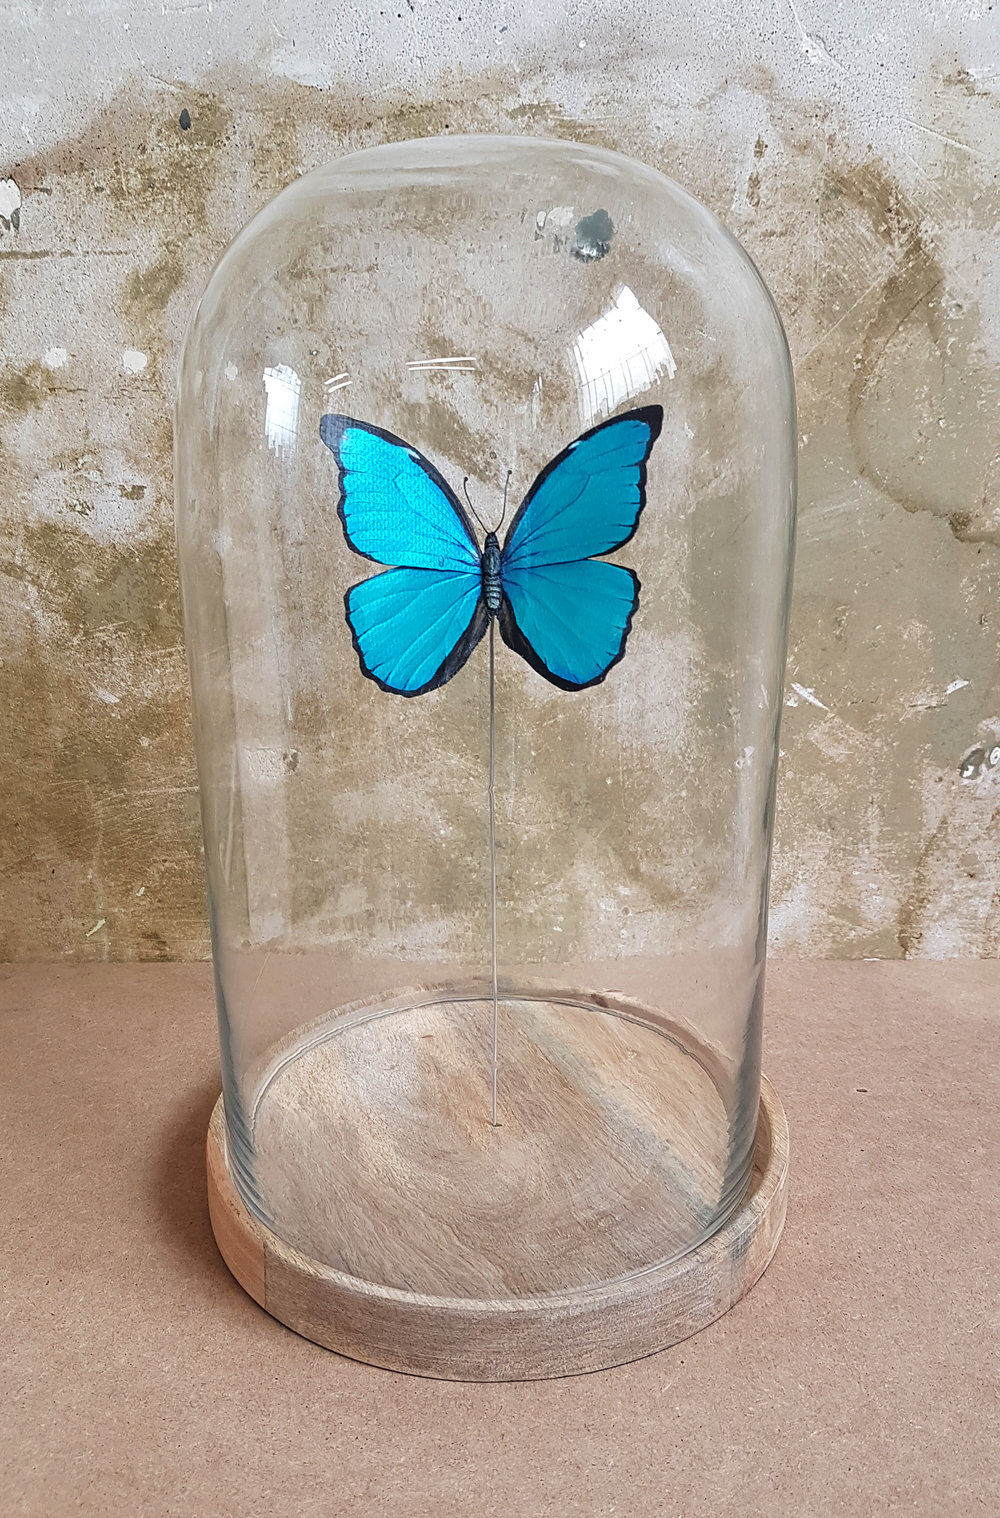 Each butterfly is displayed in their own Bell jar as pictured.